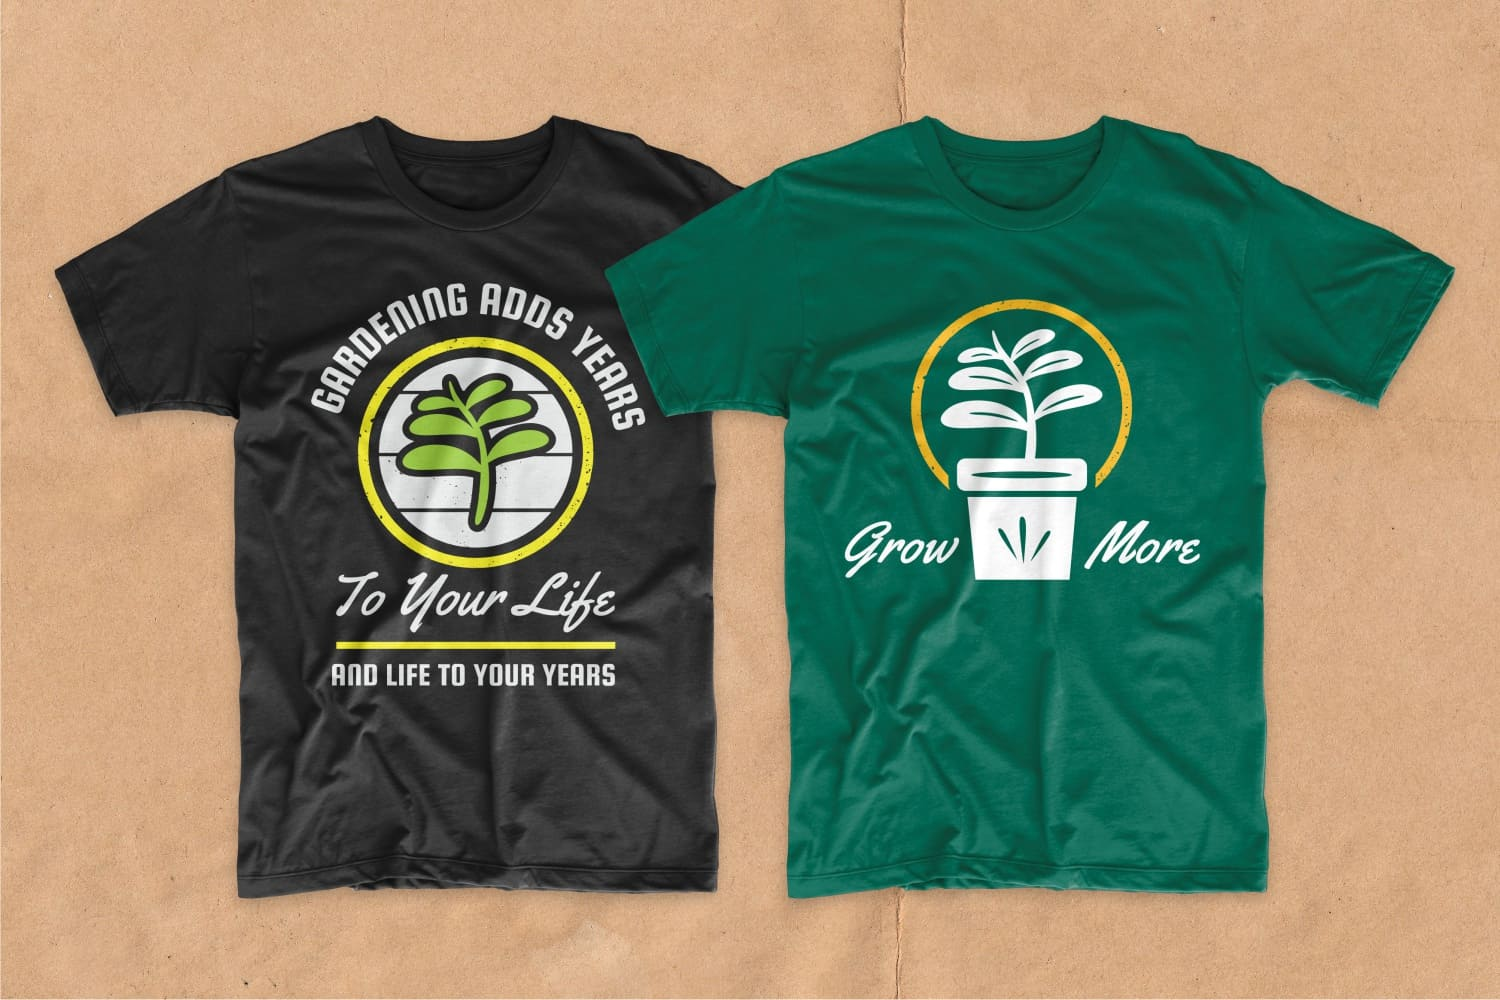 Black and green T-shirts featuring a houseplant.